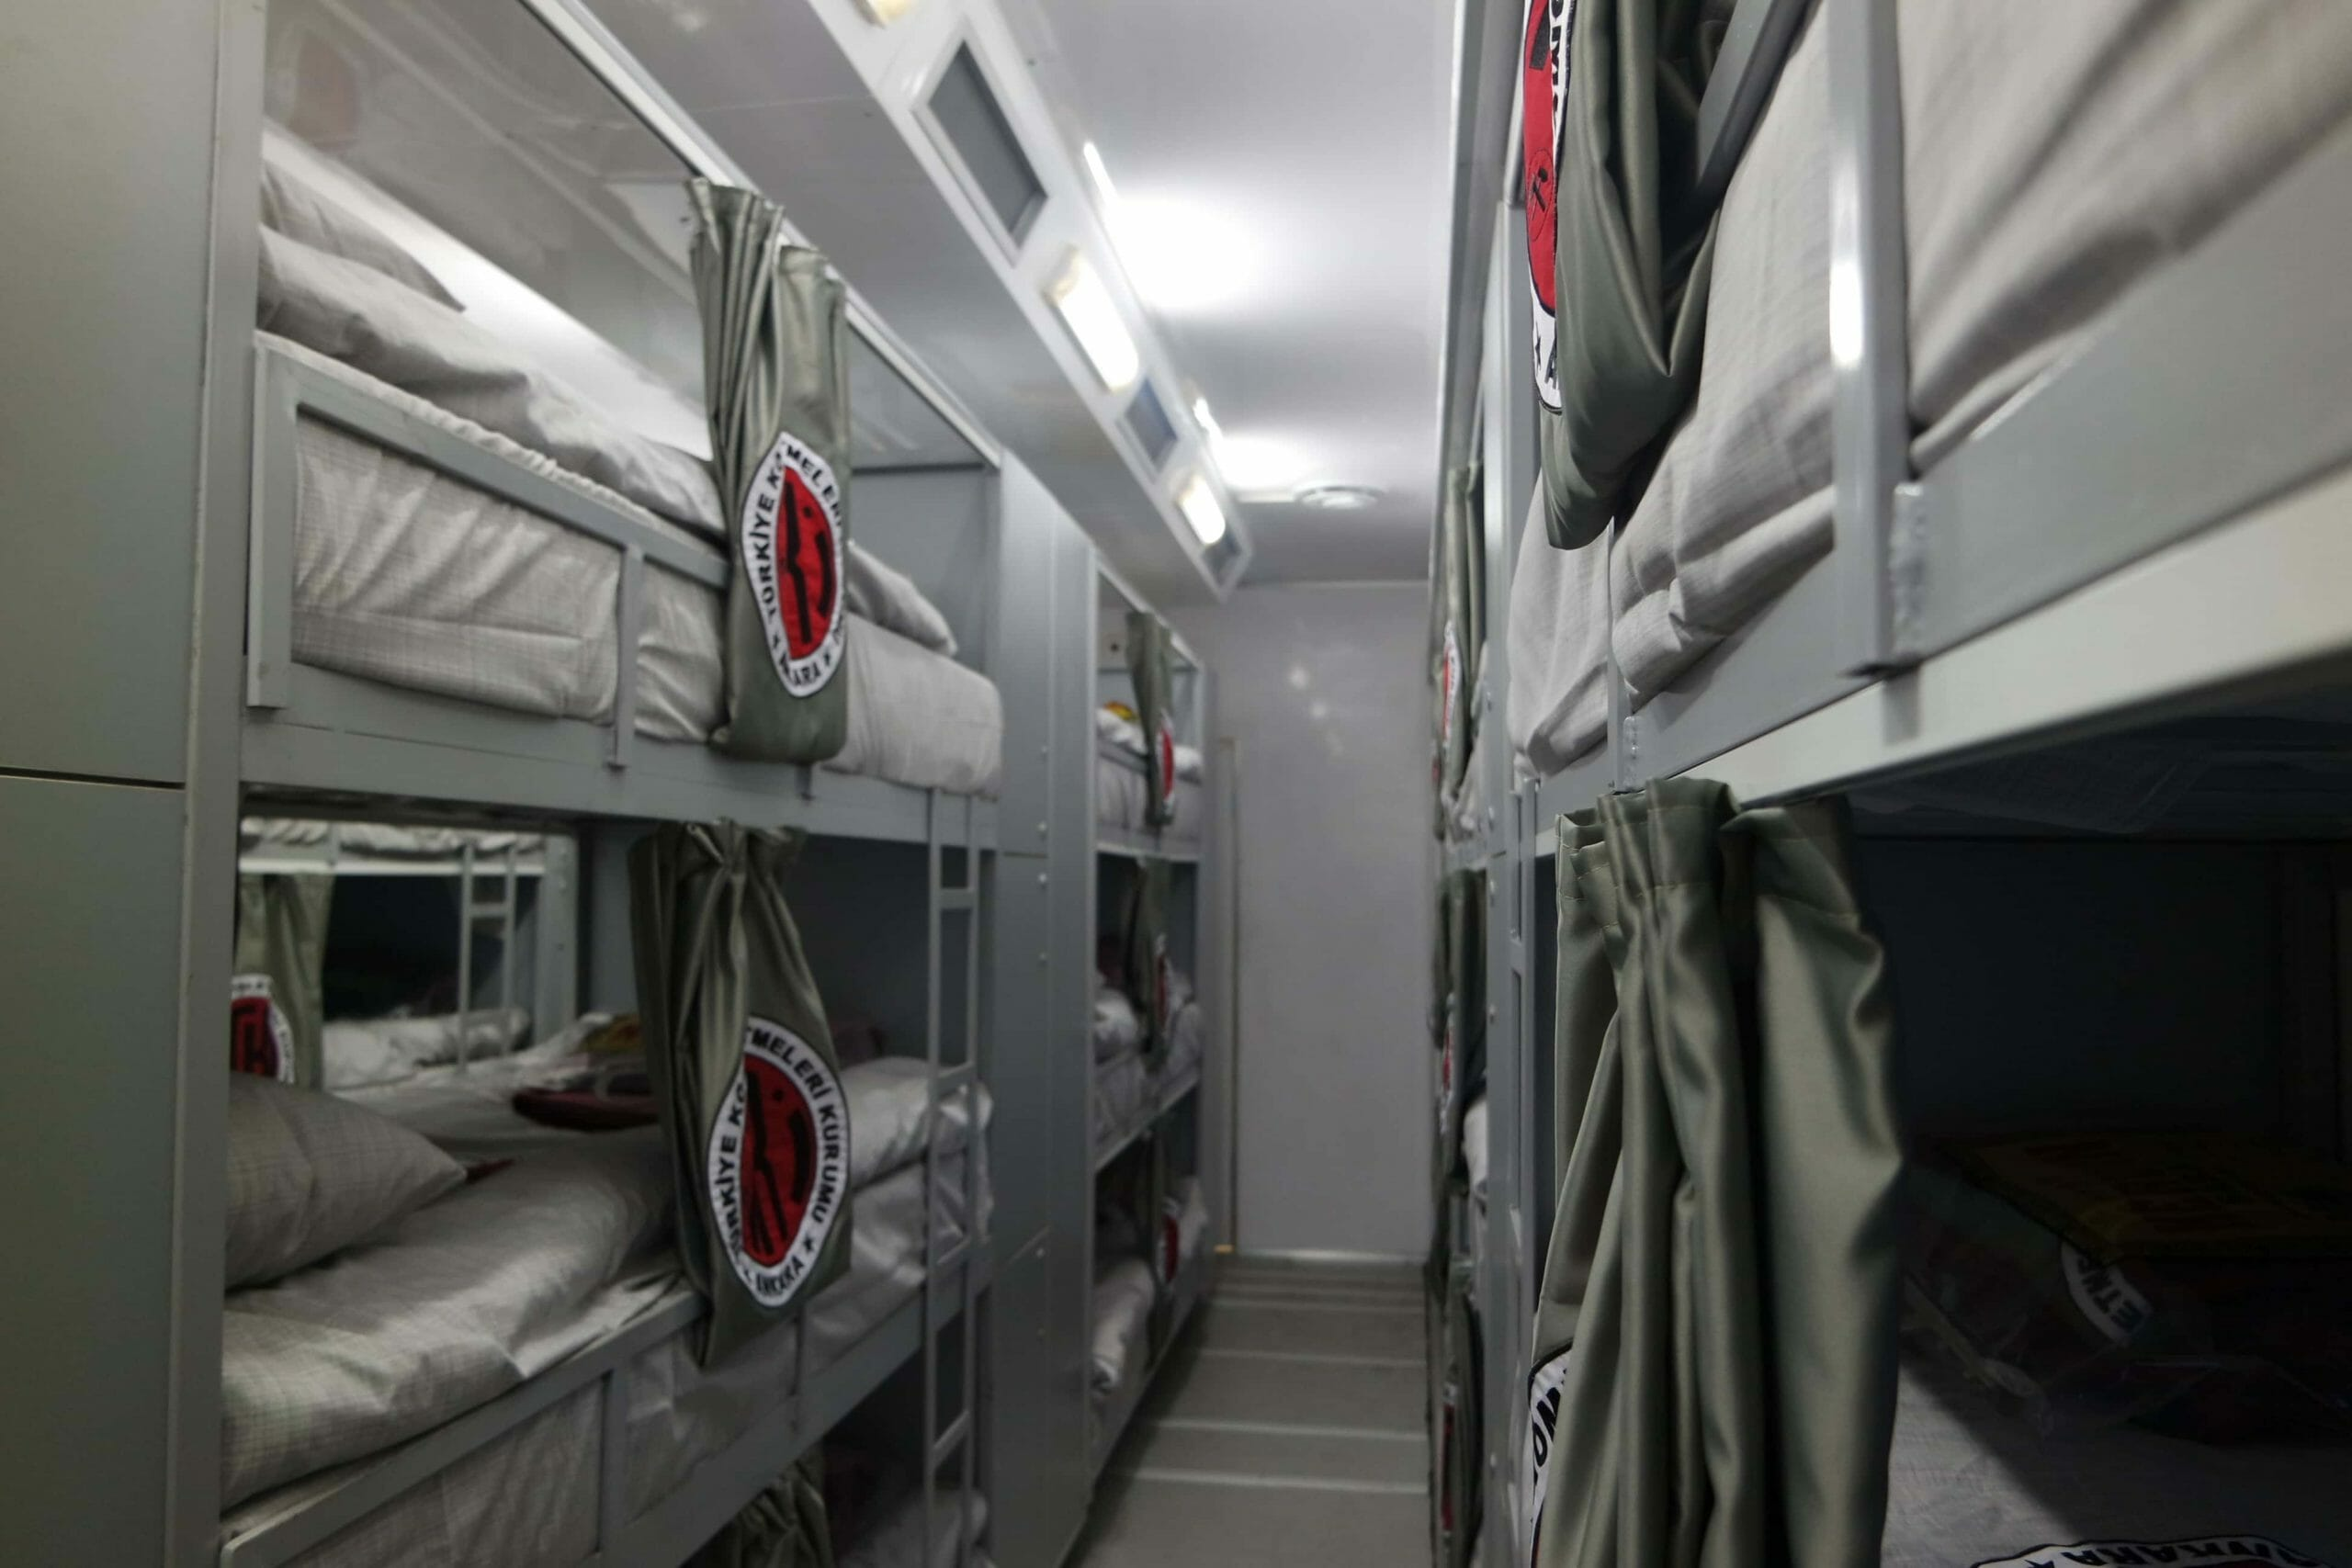 mobile-dormitory-trailer-vehicle-3-scaled.jpg